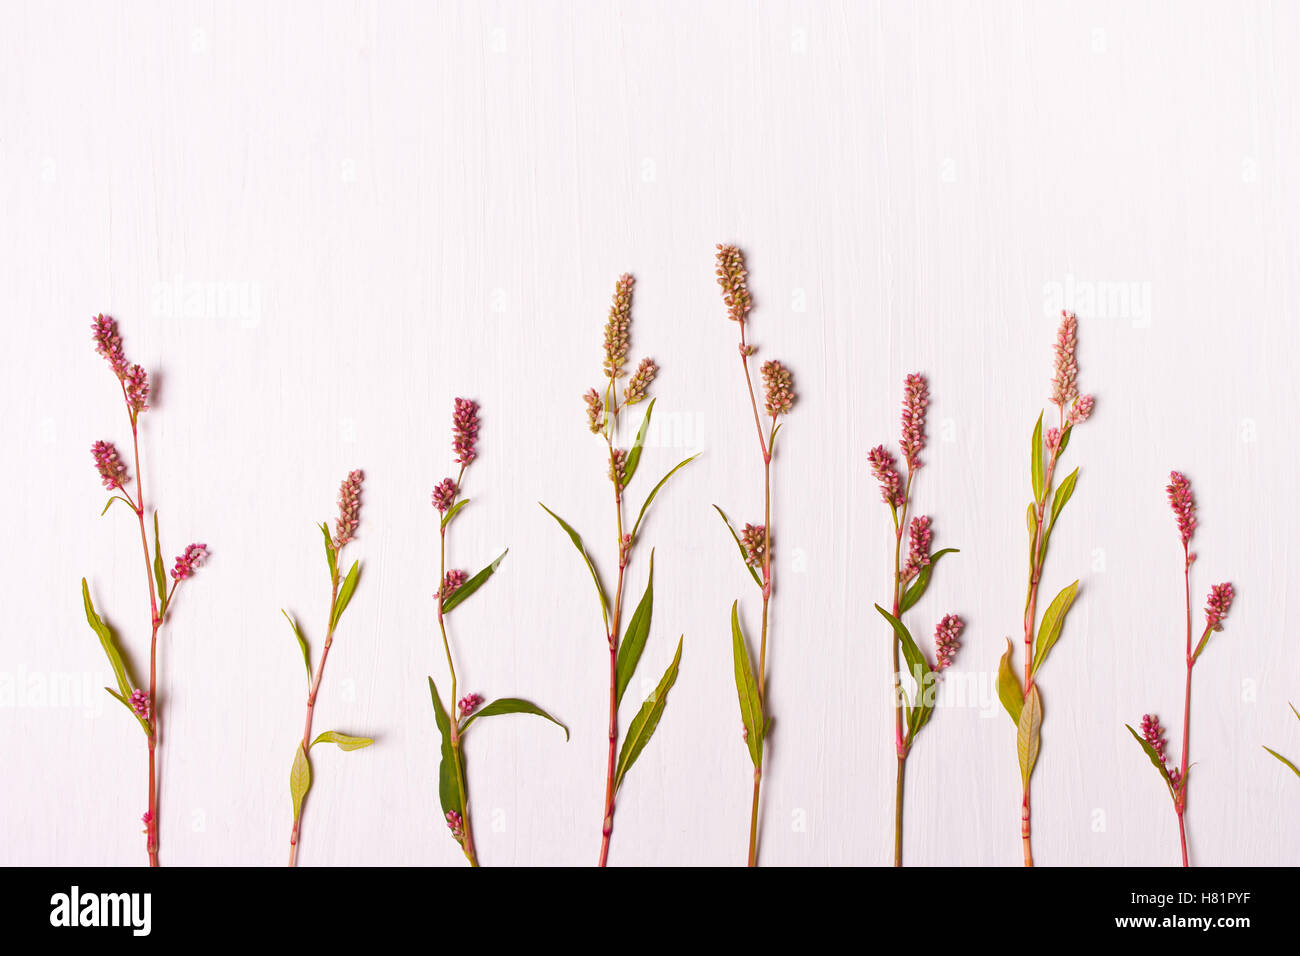 Flower pattern.Flat lay, top view.Nature concept. - Stock Image